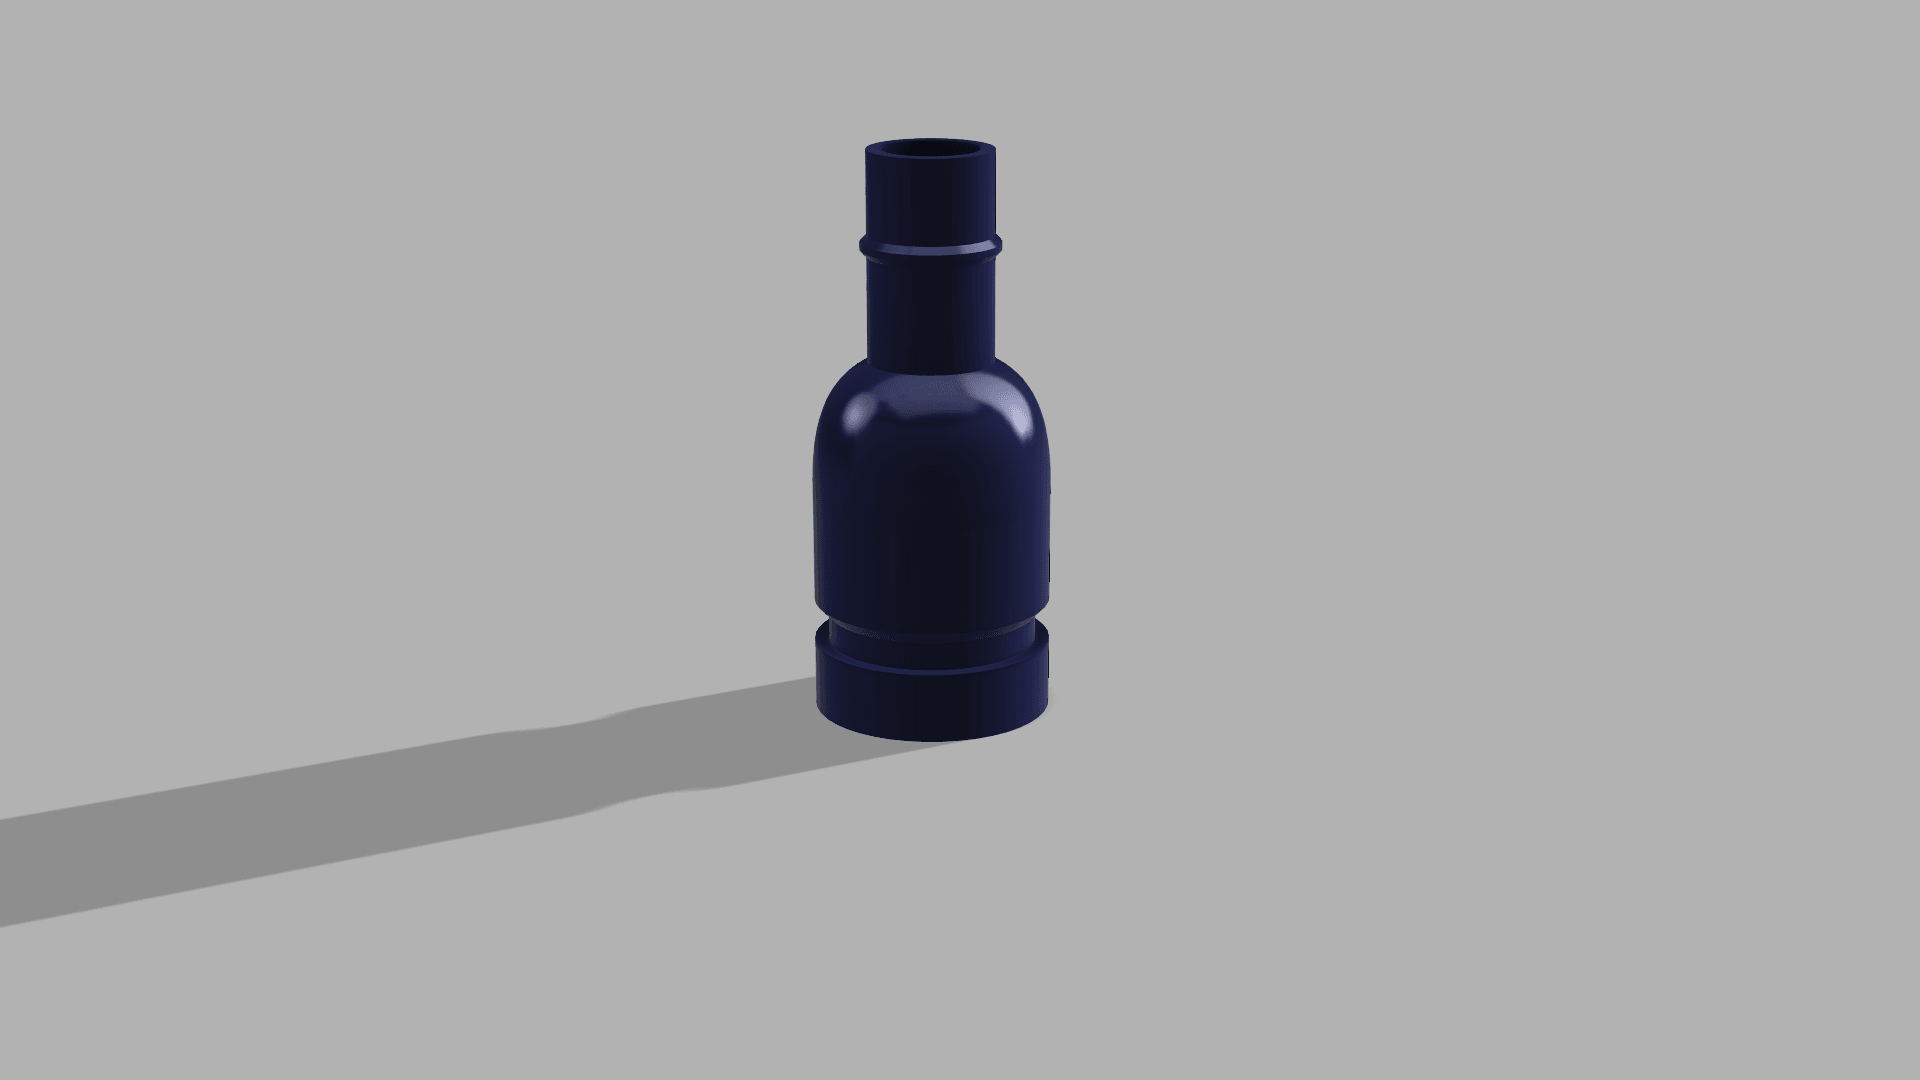 dyson_cheminee v2 v1.png Download free STL file dyson plug pipes • 3D printer design, MME